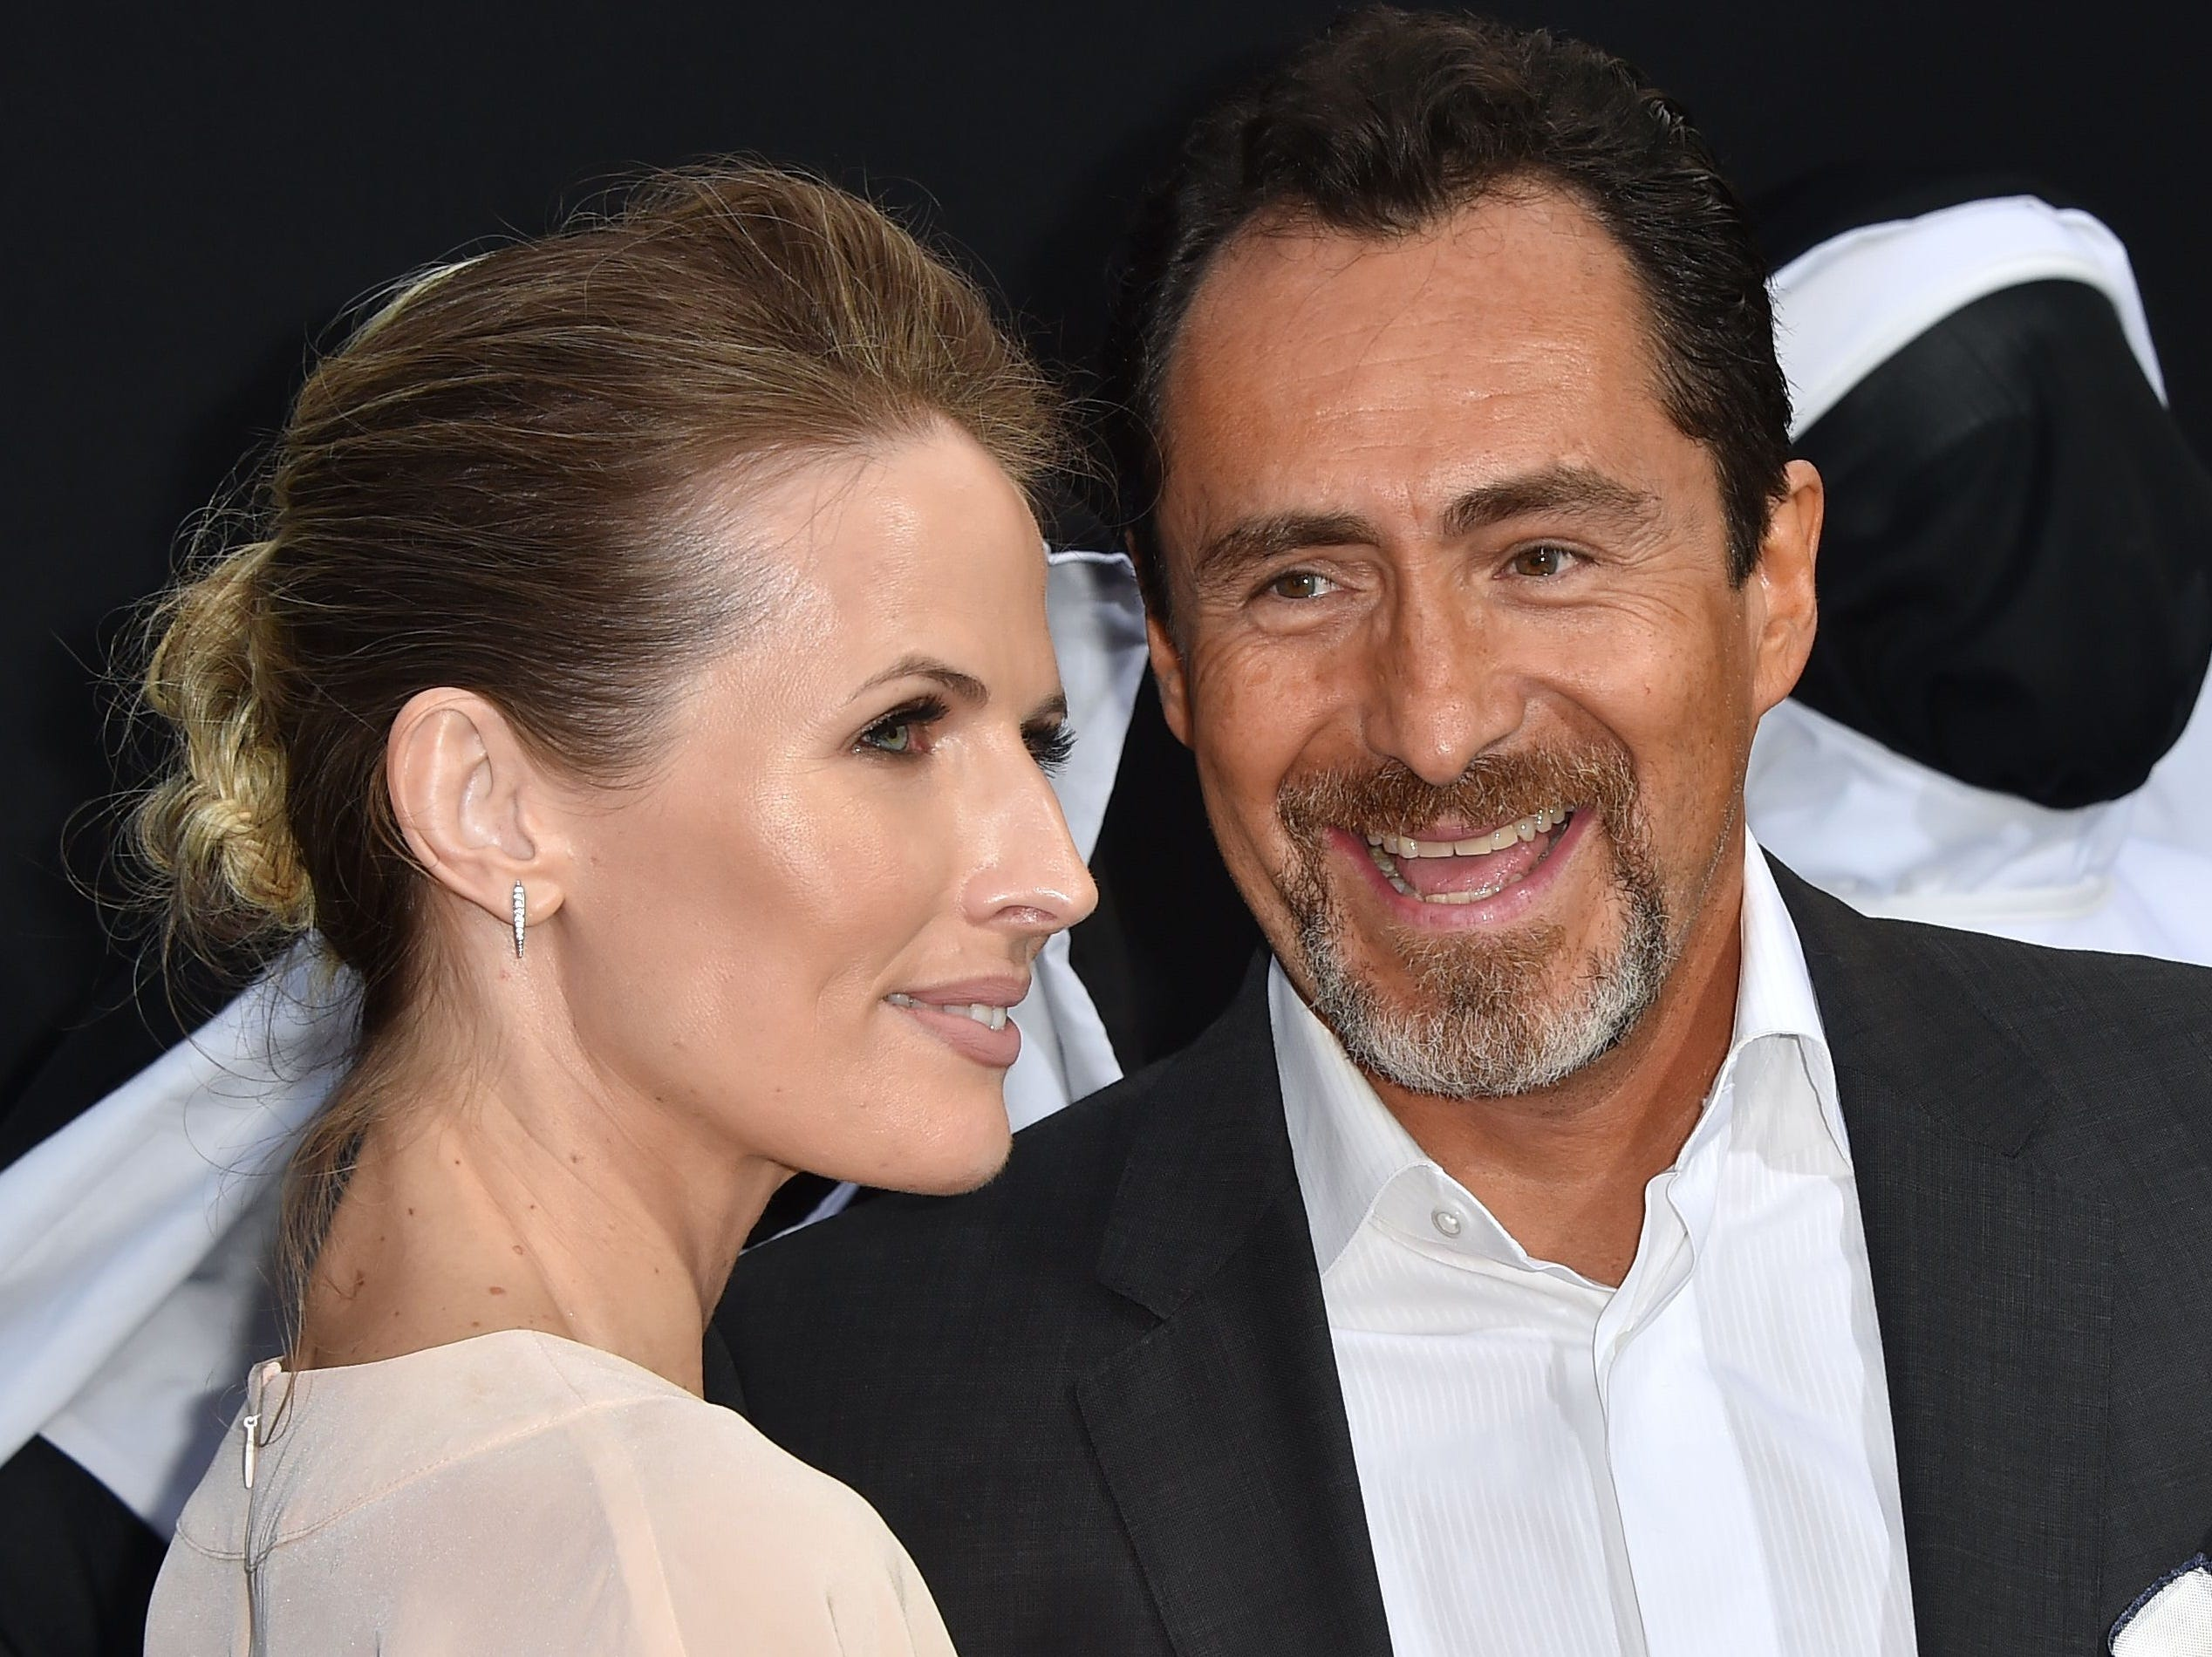 """Demian Bichir and his wife, Stefanie Sherk, attend the premiere of his film """"The Nun"""" in Hollywood, California, on Sept. 4, 2018."""